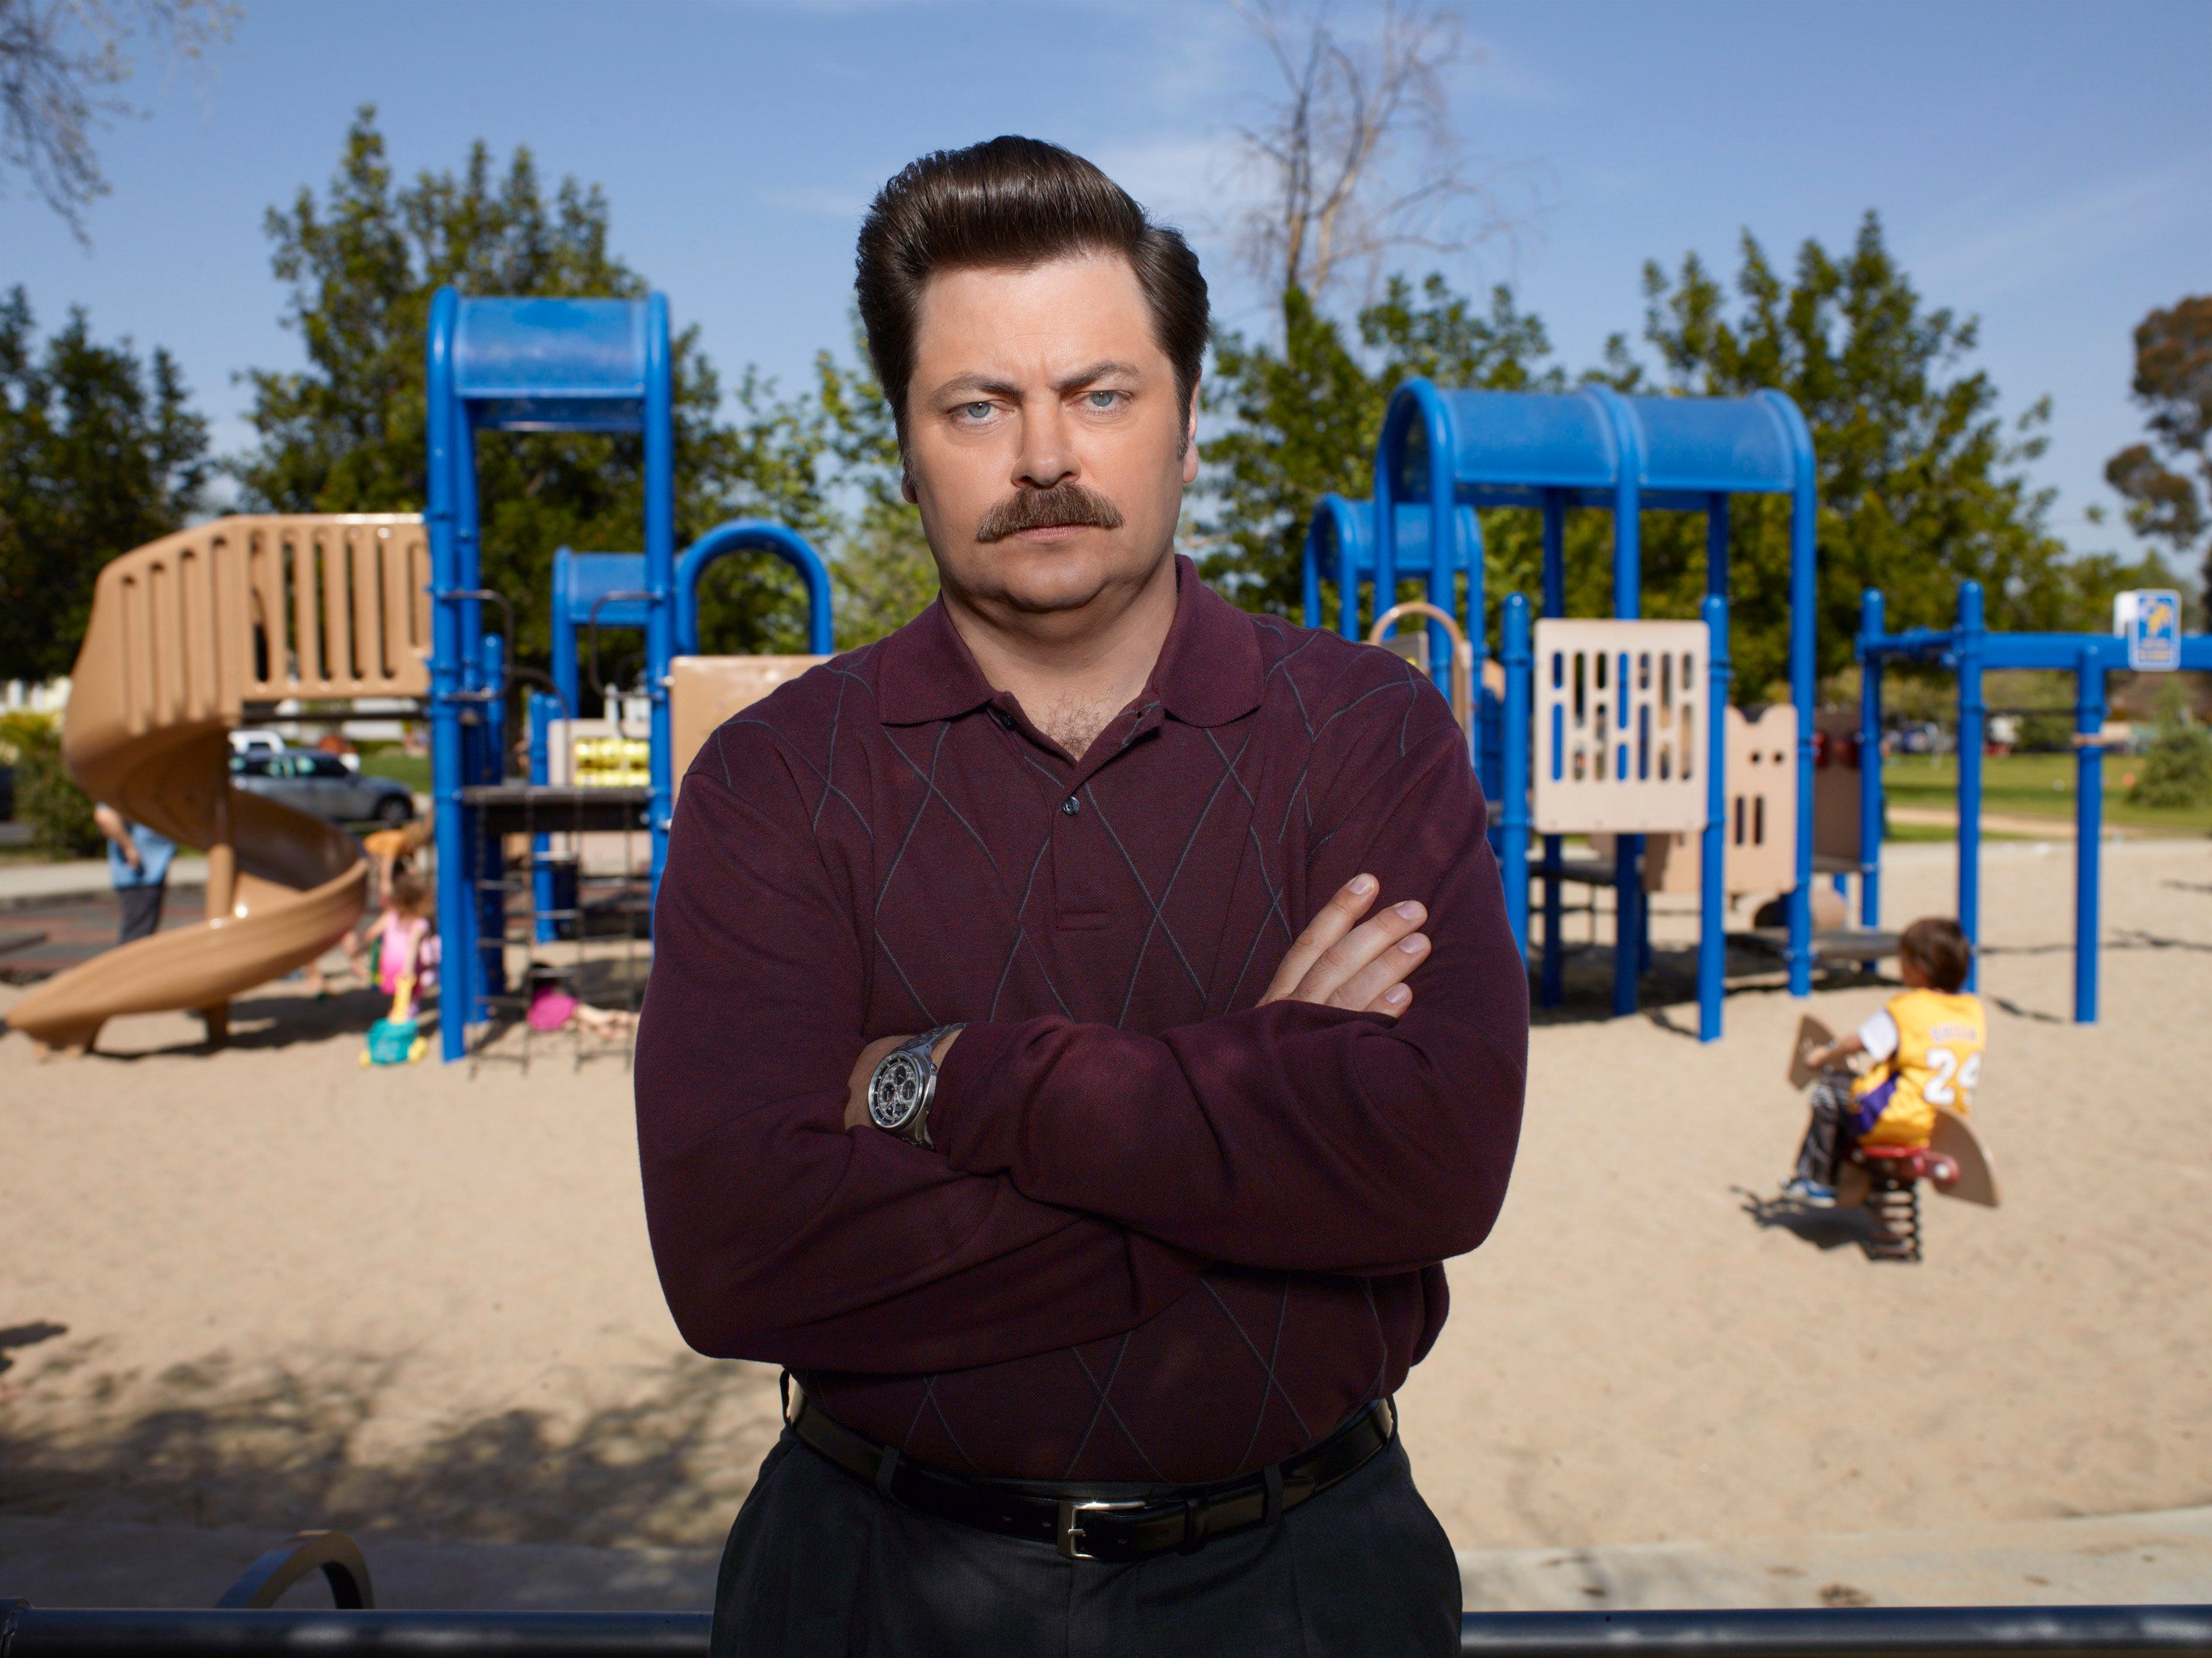 PARKS AND RECREATION -- Season: 3 -- Pictured: Nick Offerman as Ron Swanson -- Photo by: Mitchell Haaseth/NBC